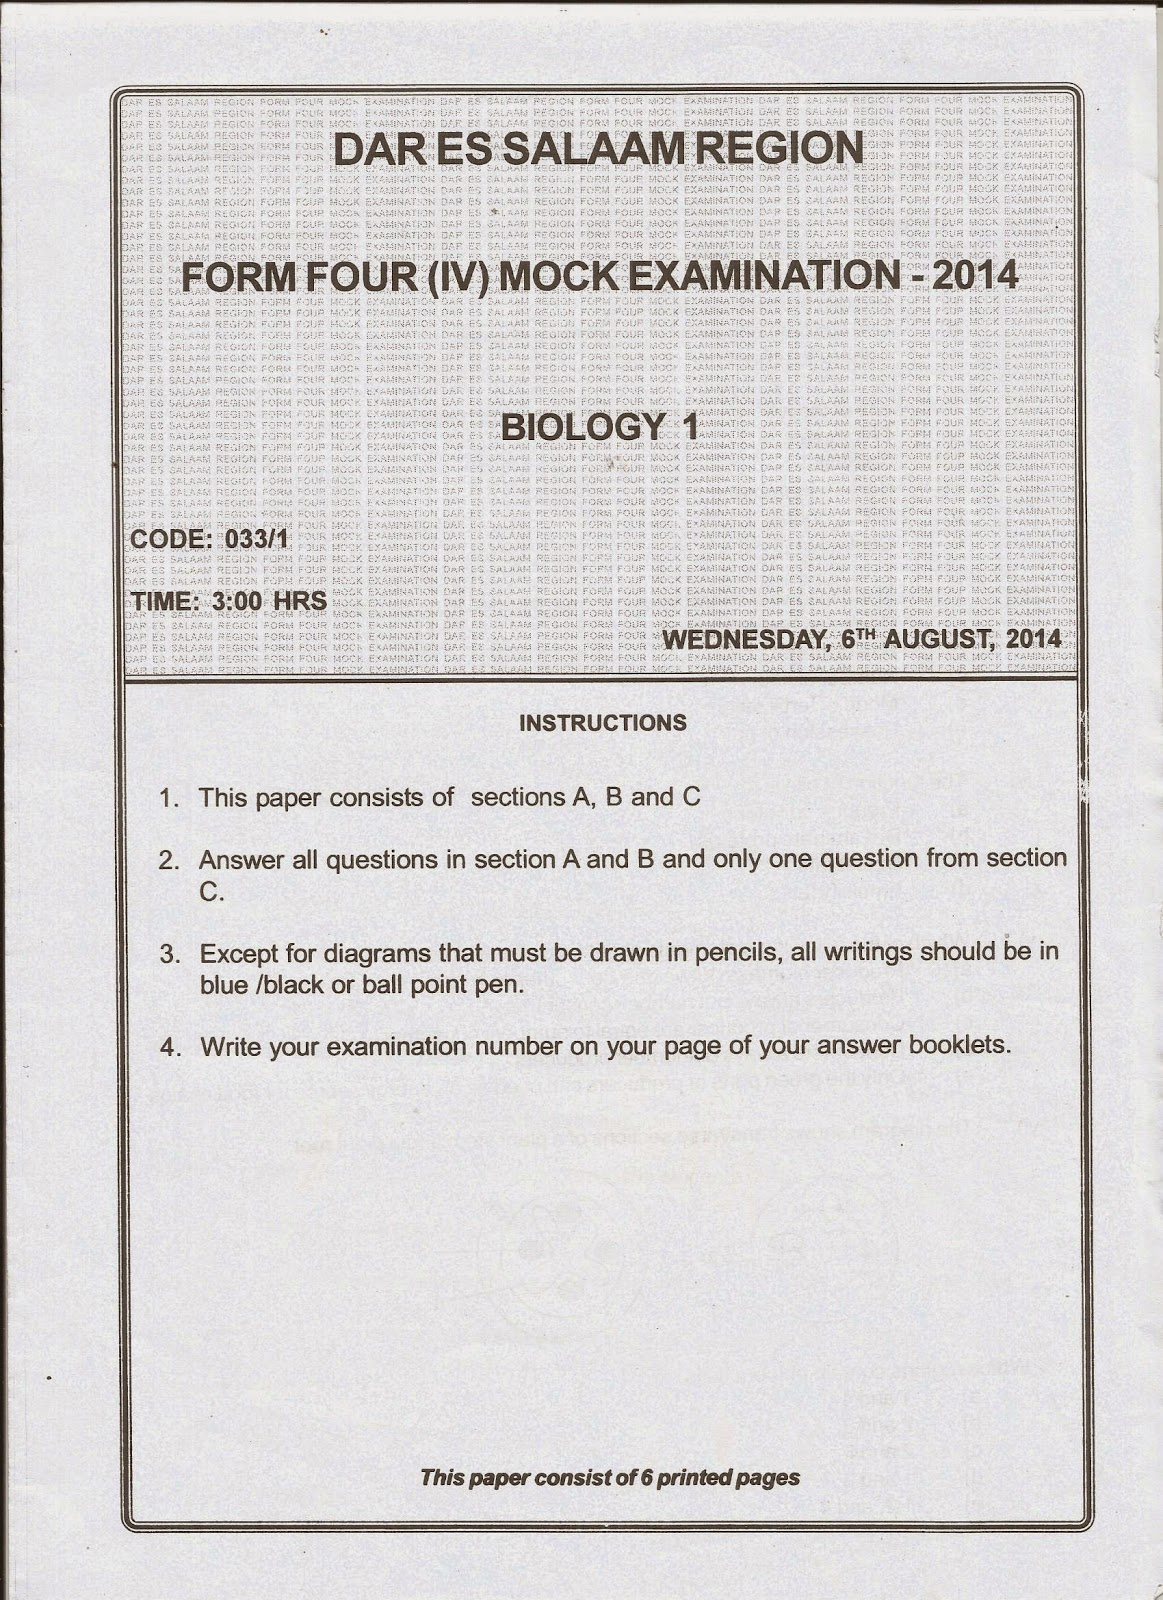 MWL JAPHET MASATU BLOG: O33 / 1 BIOLOGY 1 FORM FOUR { IV